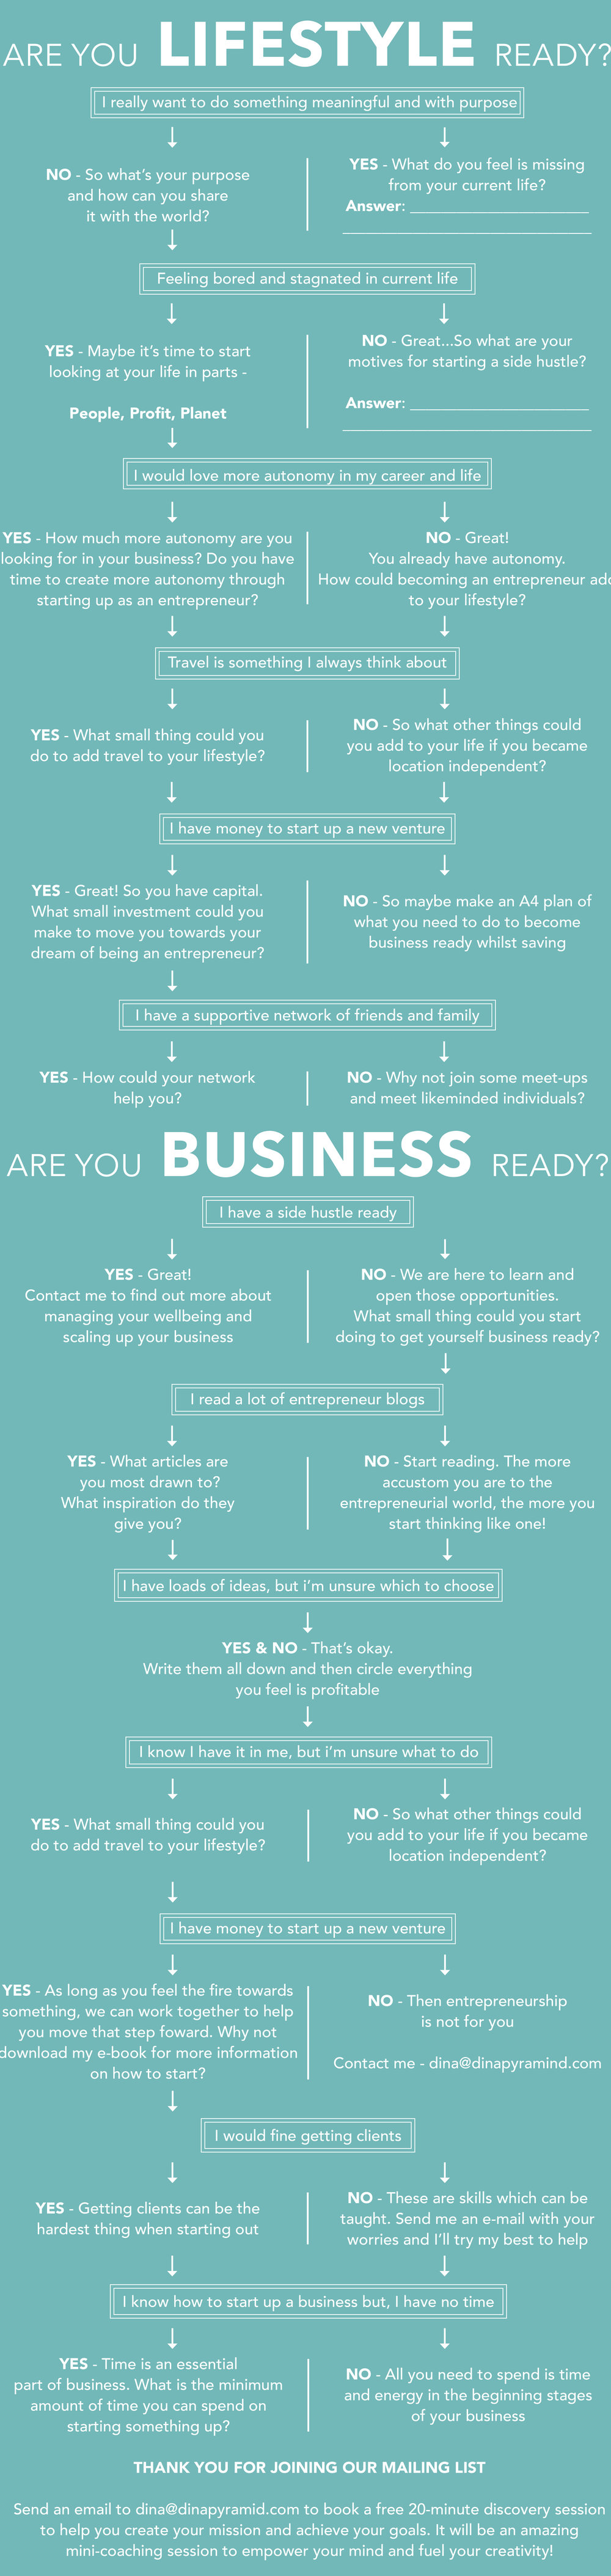 Are you ready to be independent and live a limitless lifestyle? Flowchart